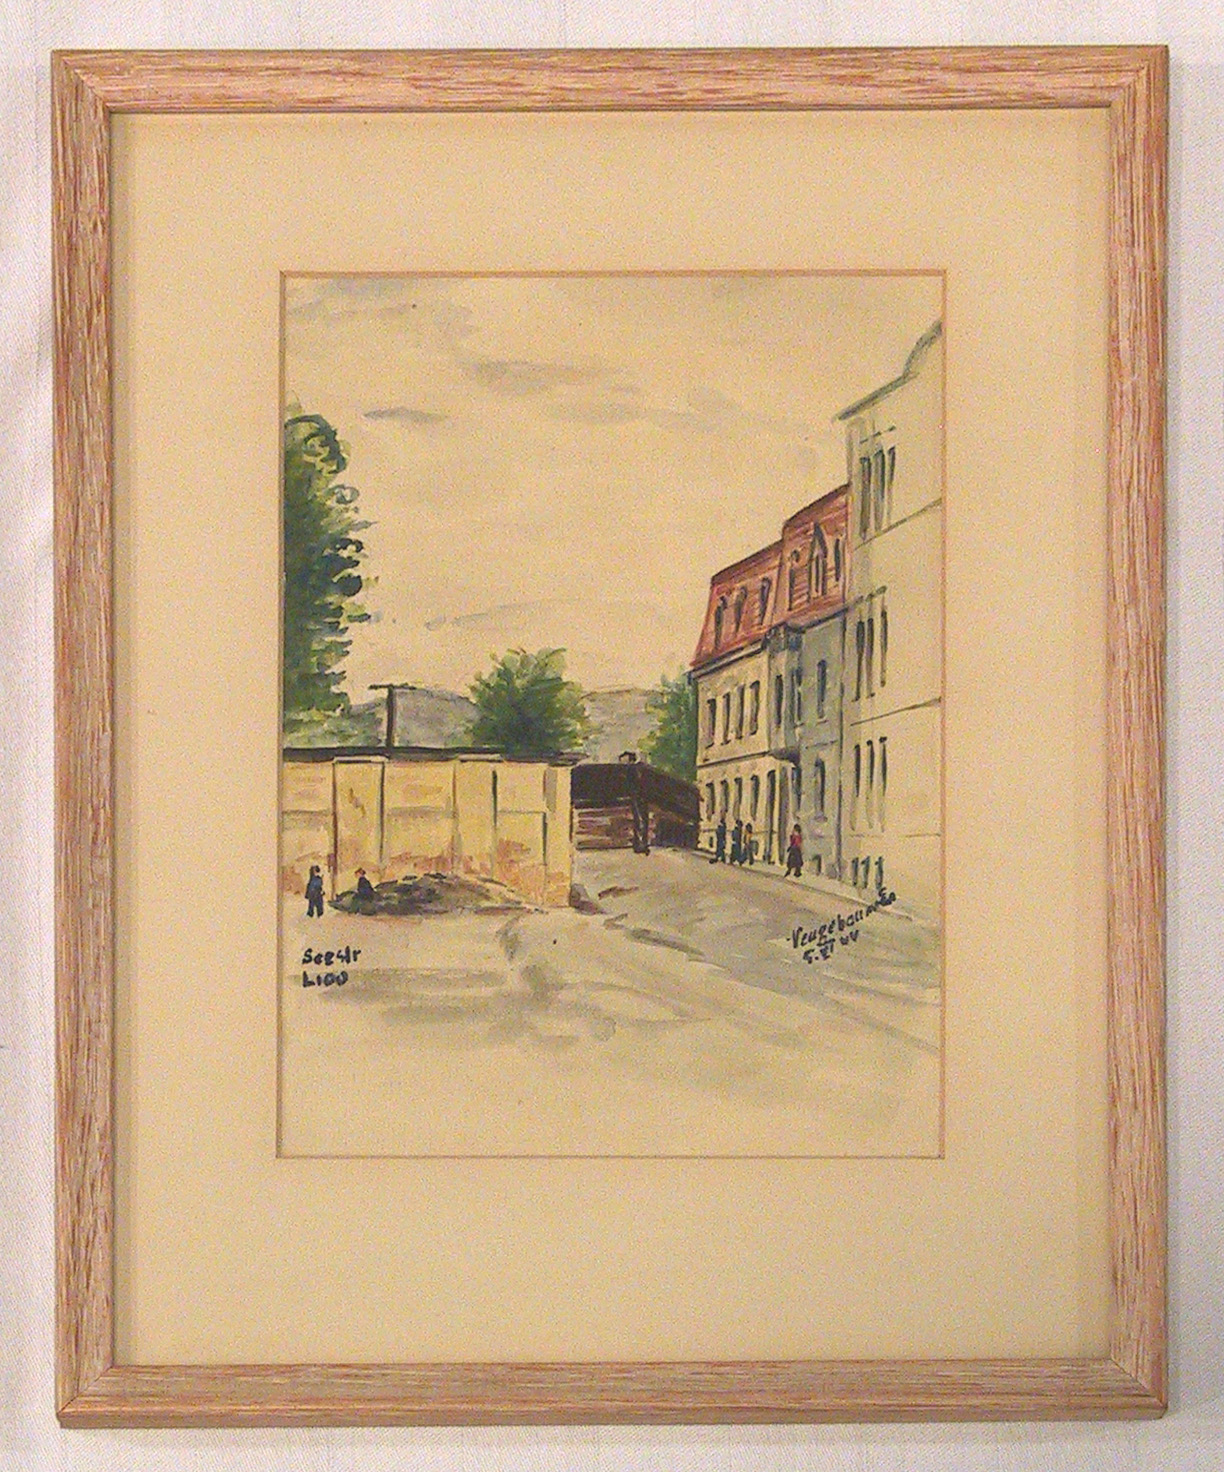 The ''L'' Block of the Theresienstadt ghetto painted by Edvard Neugebauer for Nazi propaganda.